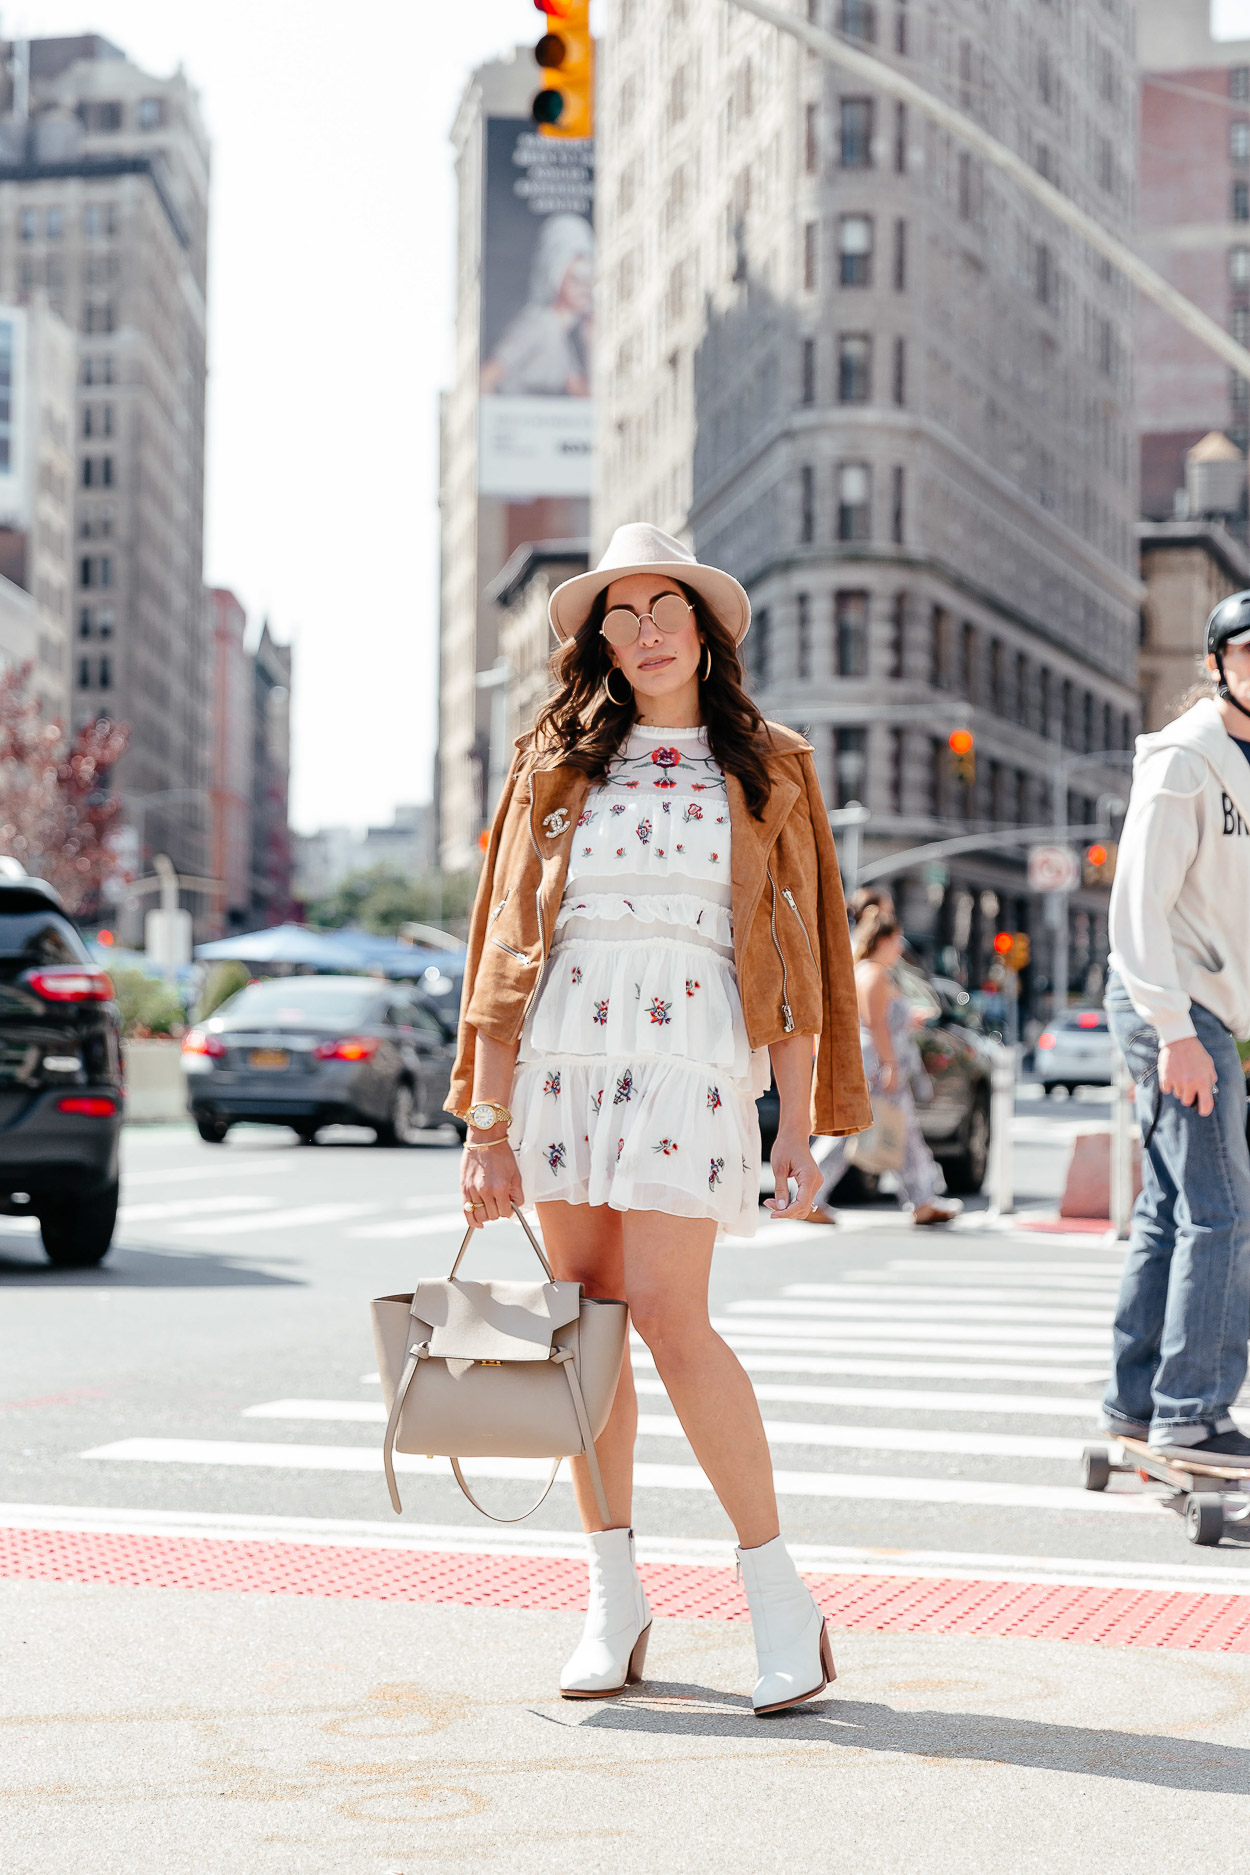 Topshop white booties and Chicwish tiered floral dress were the final look at NYFW for Amanda of A Glam Lifestyle blog